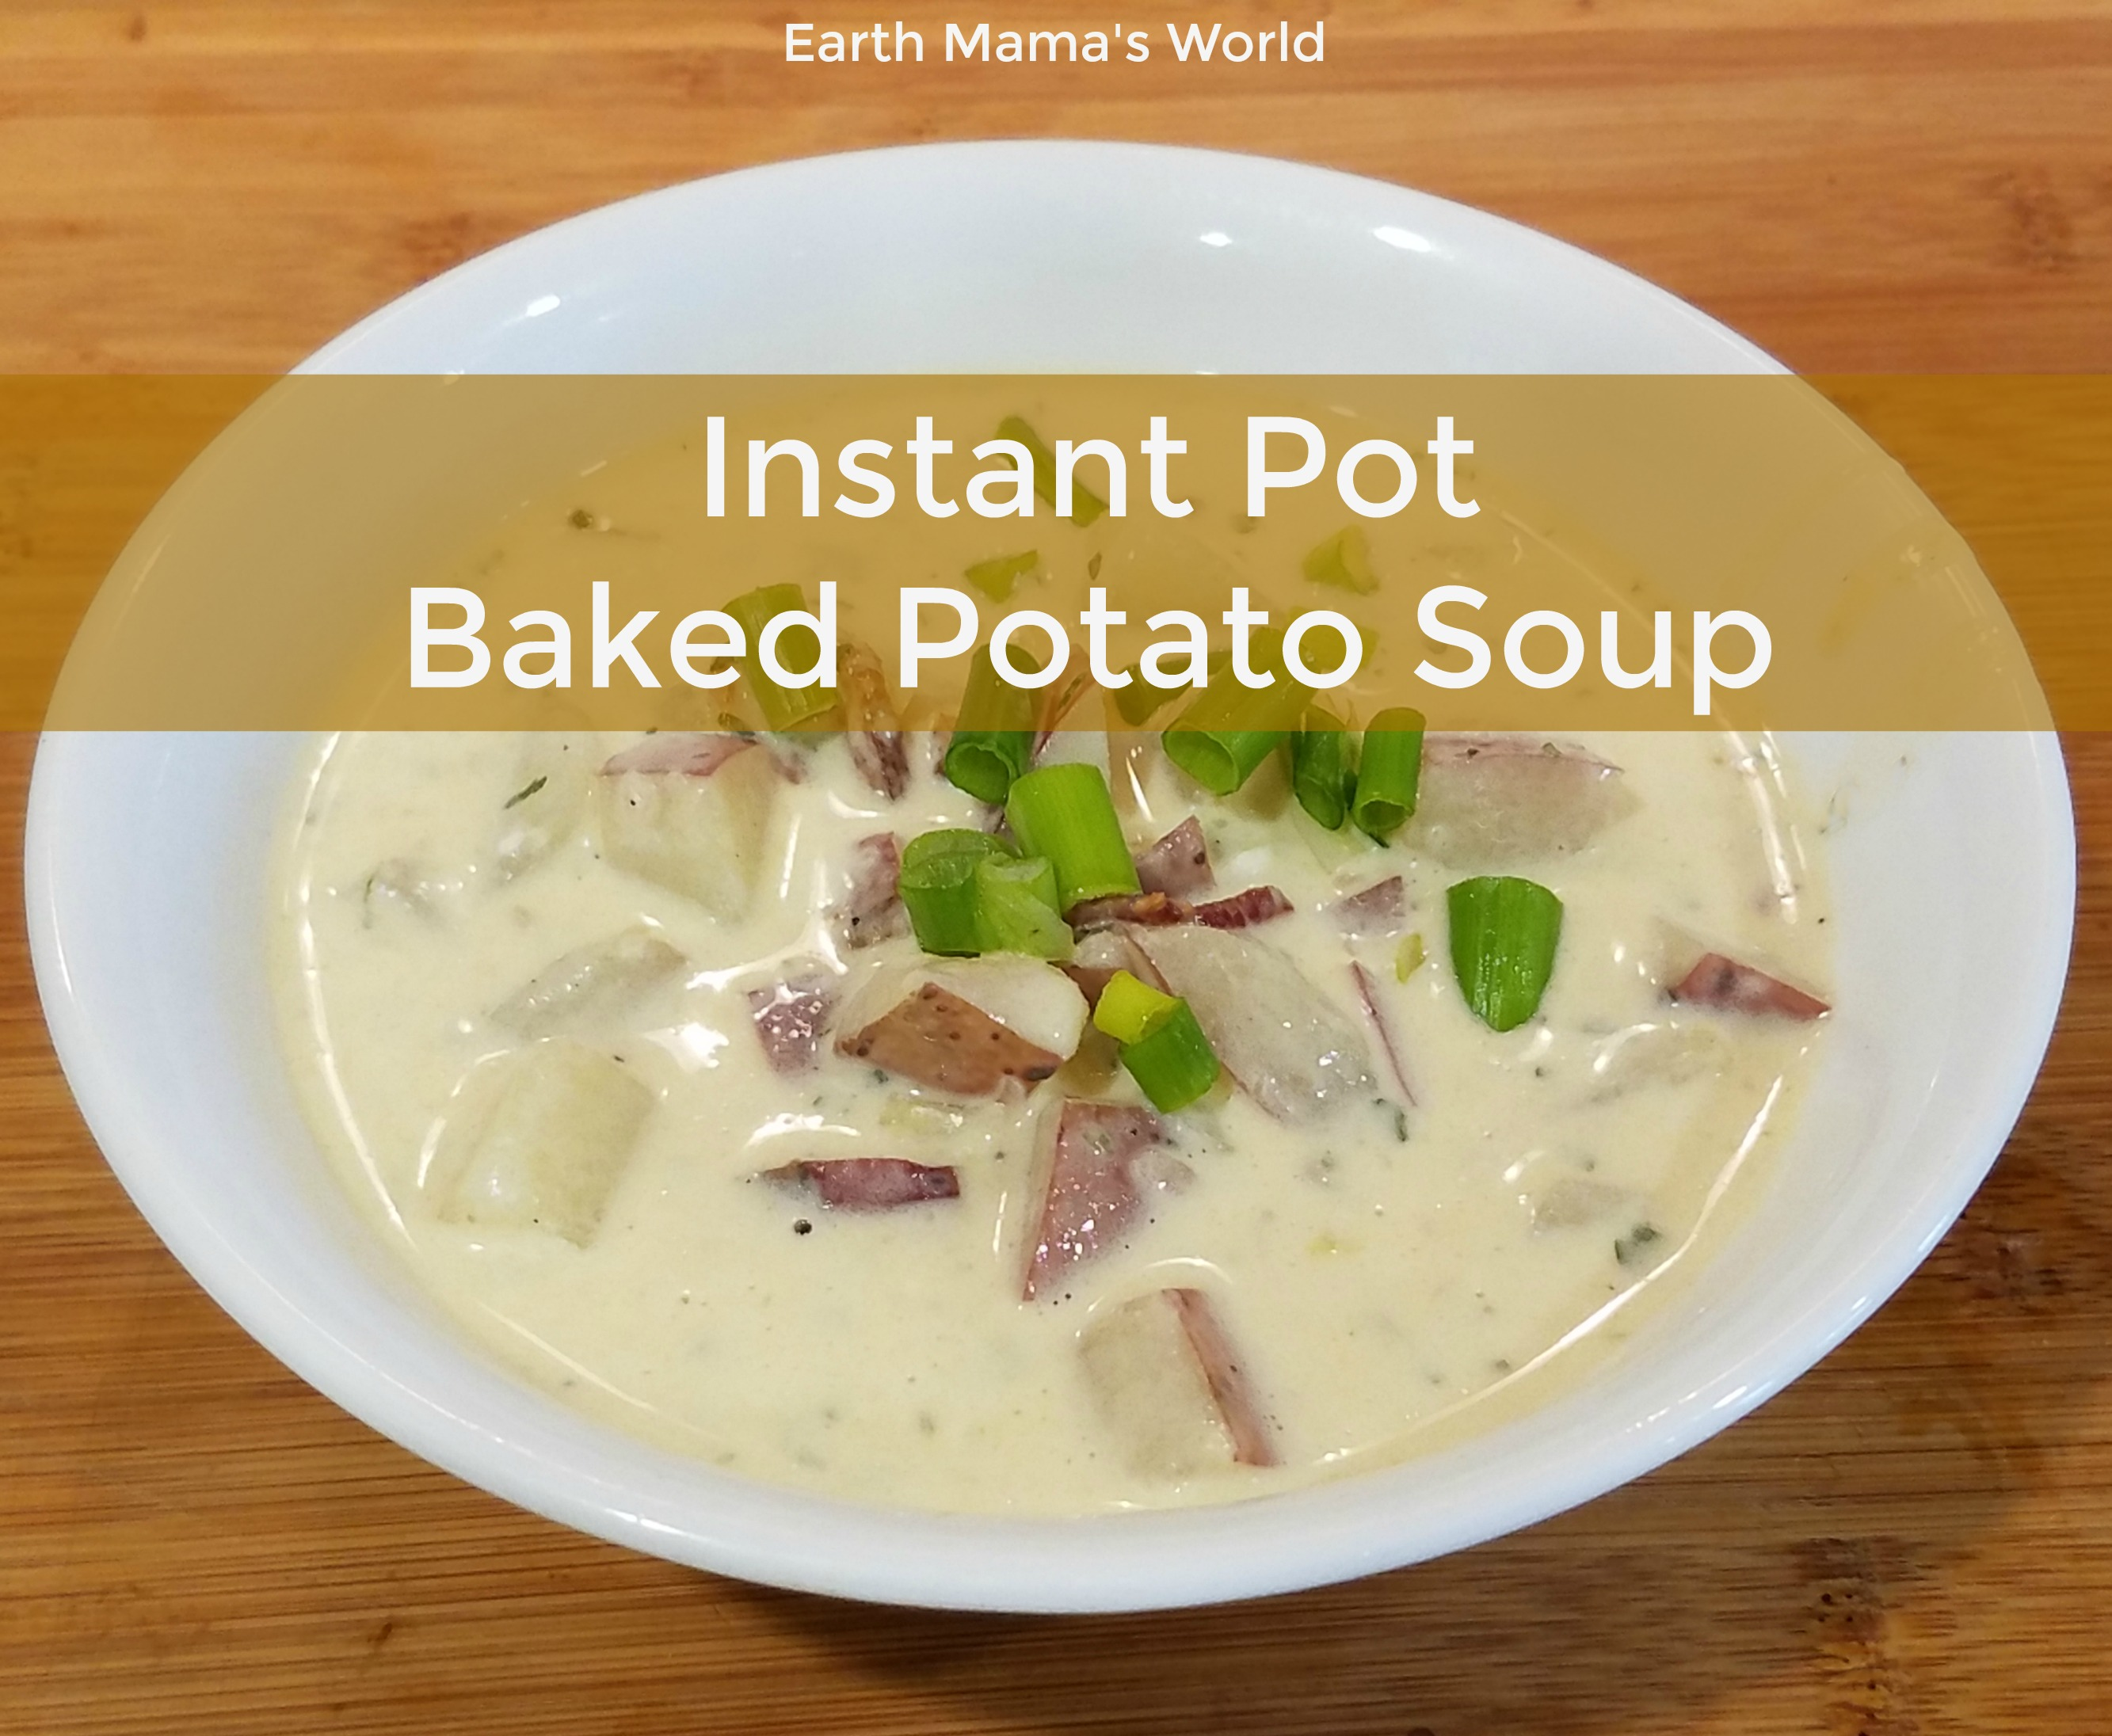 Instant Pot Baked Potato Soup